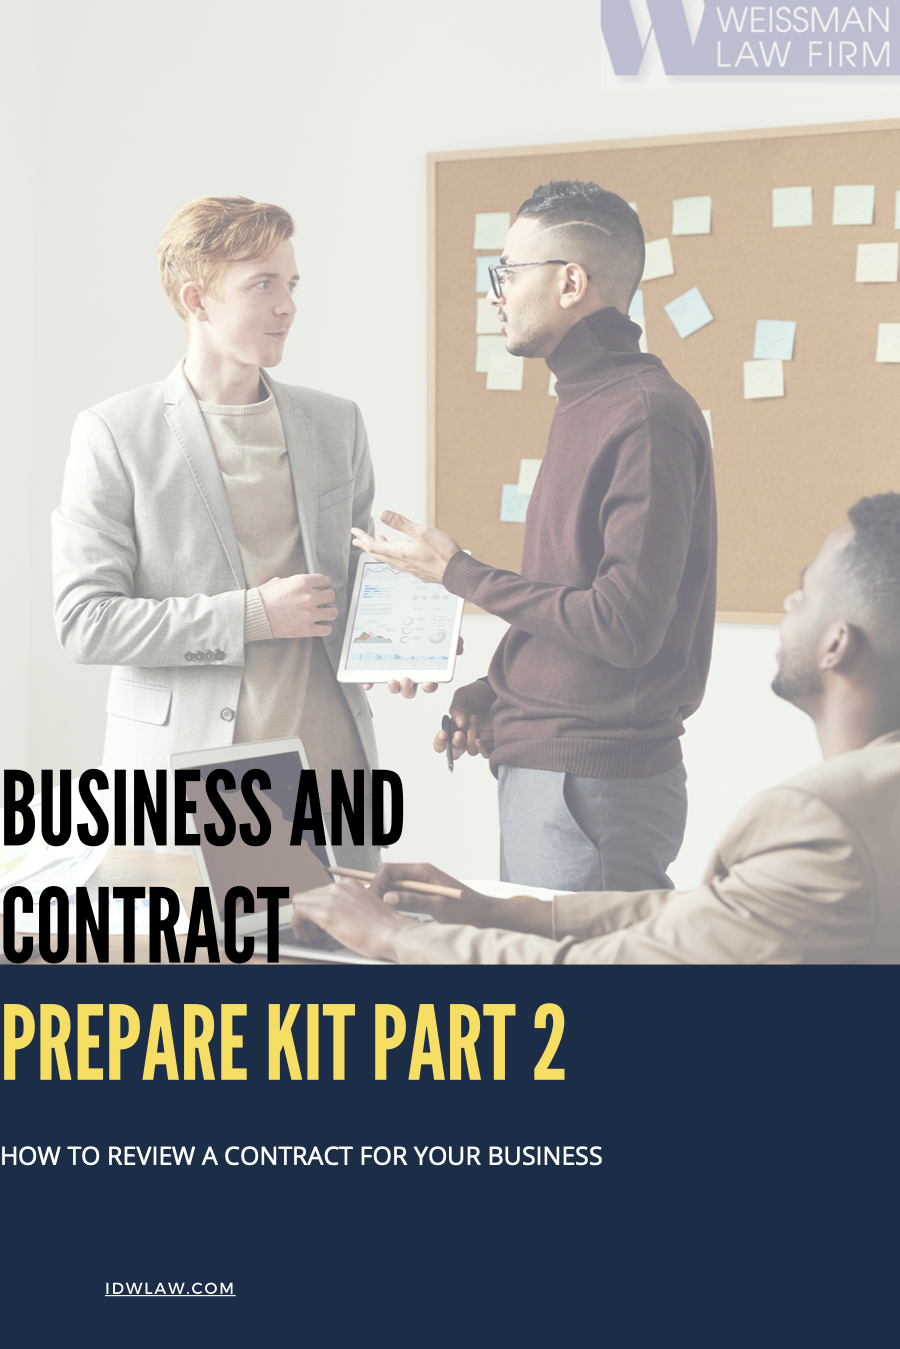 Business and Contract Prepare Kit Part 2